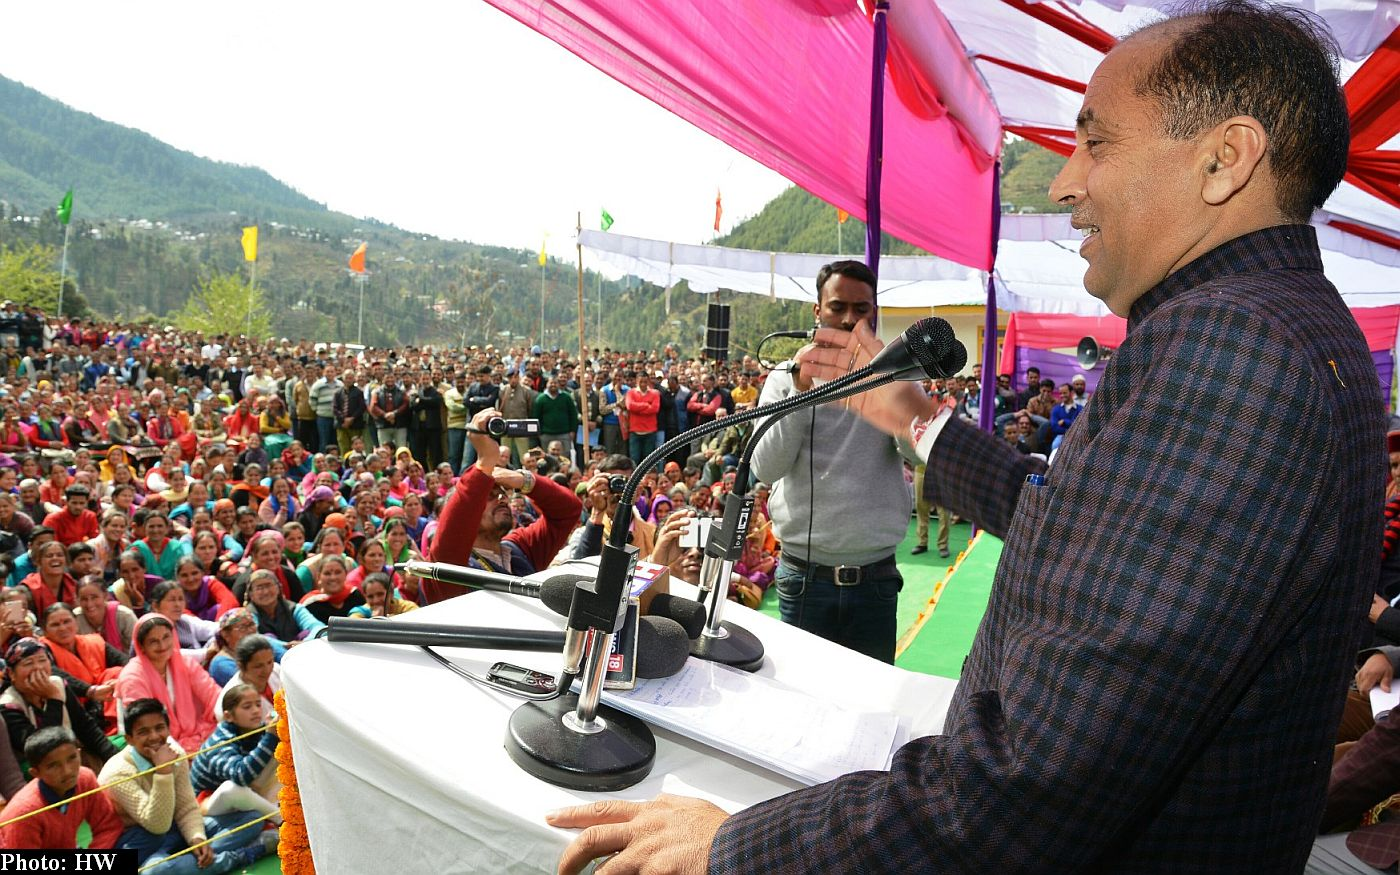 Jairam Thakur's Seraj visit in march 2018